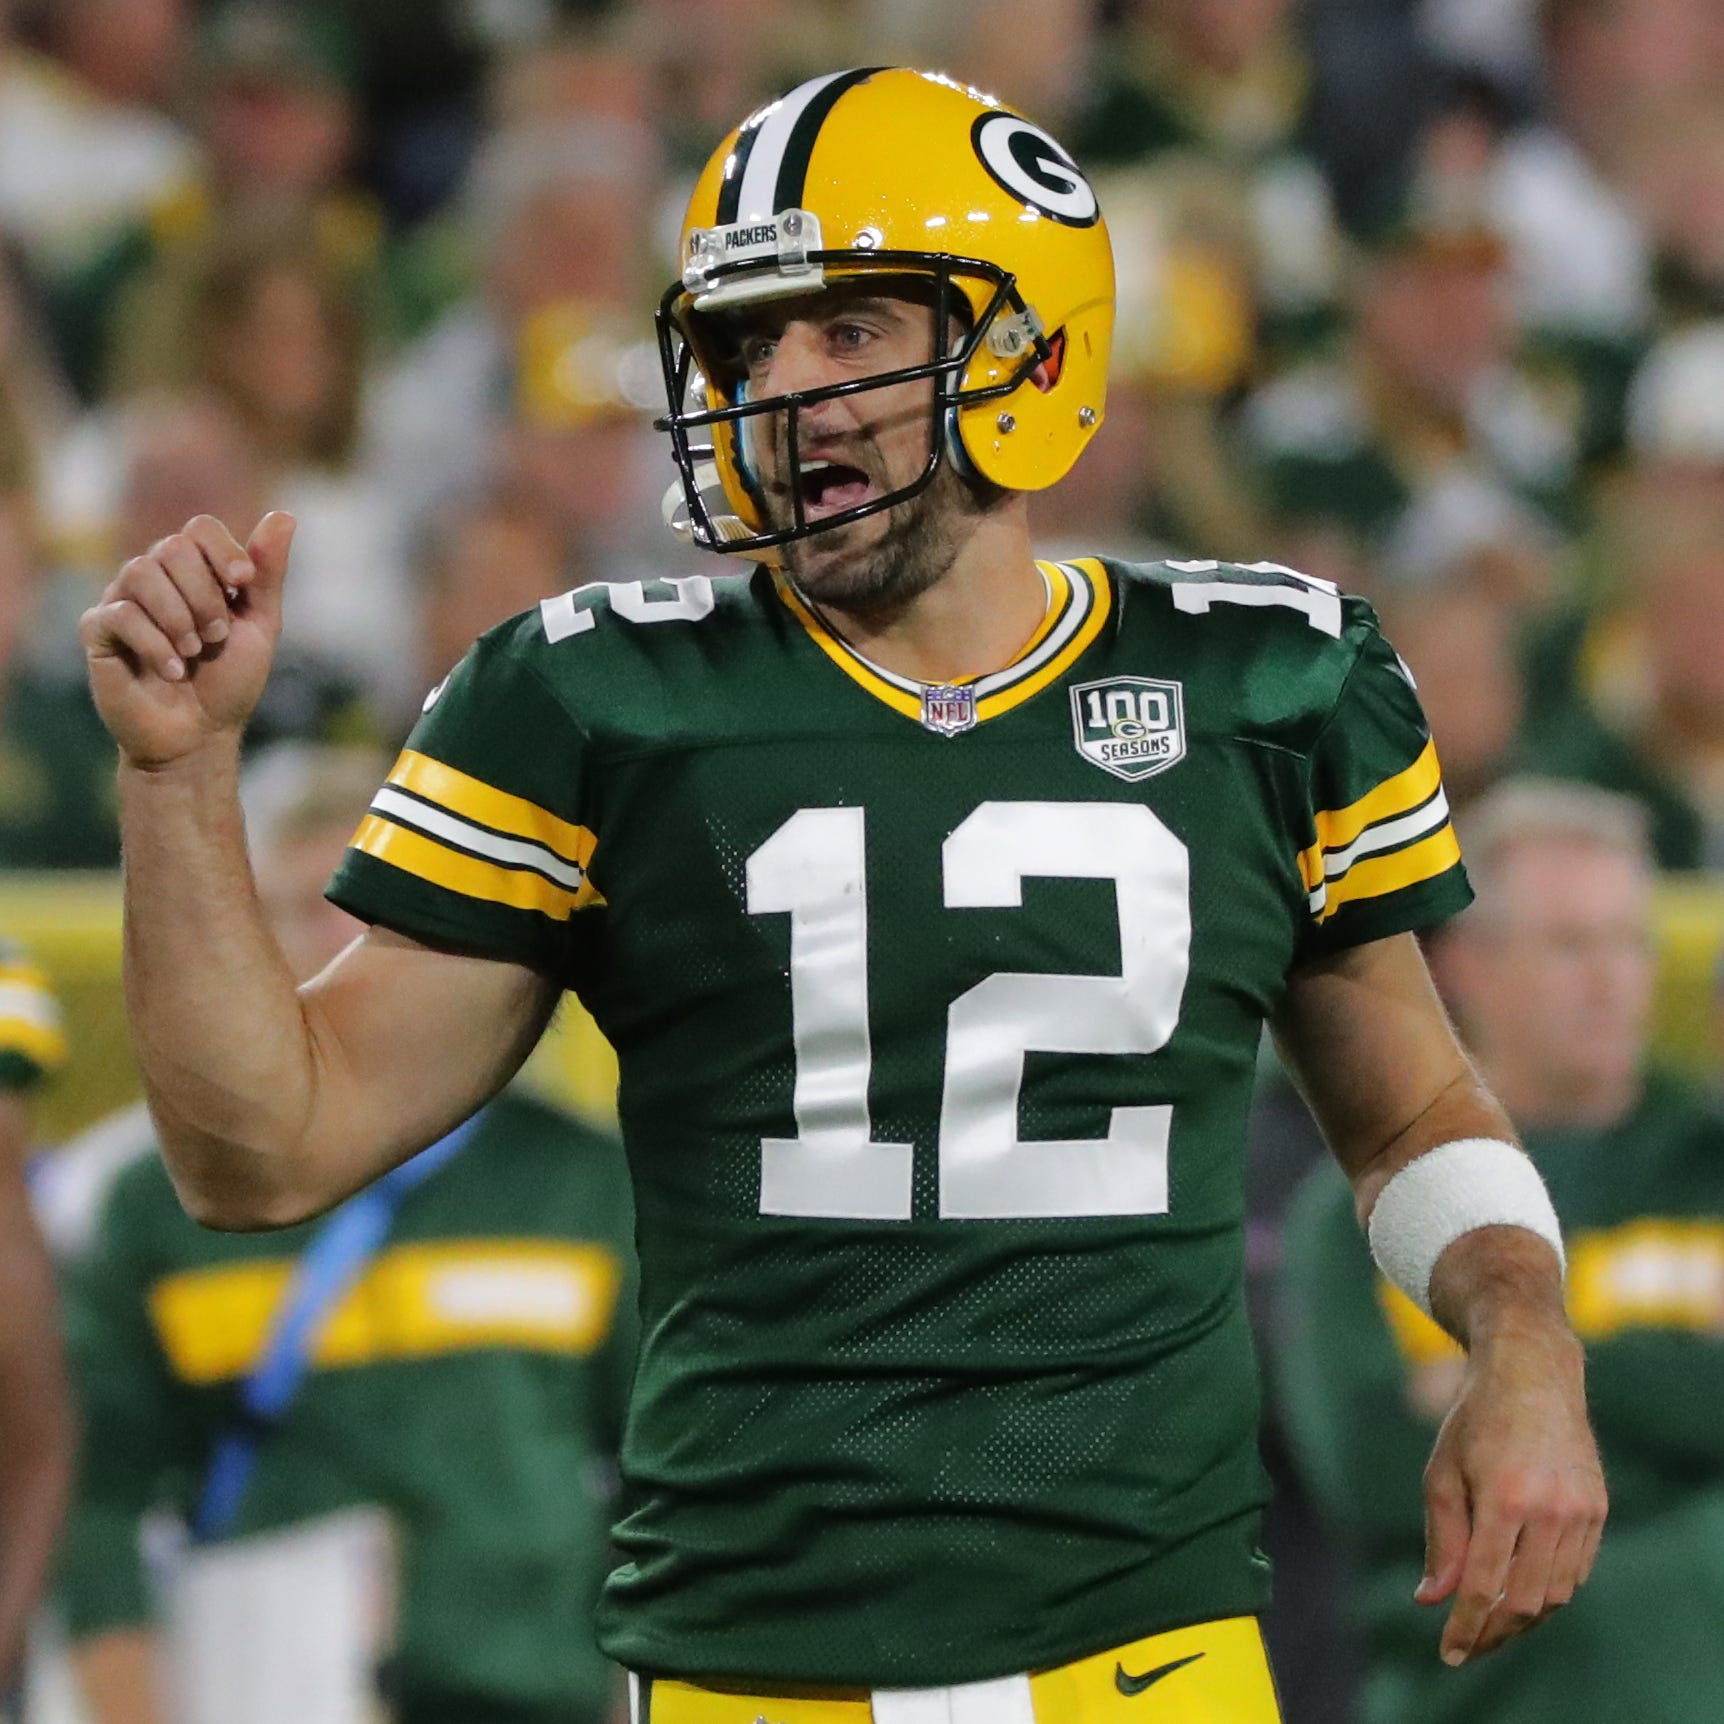 Twitter tried to wrap its mind around that insane Aaron Rodgers resurrection and Packers comeback Sunday night